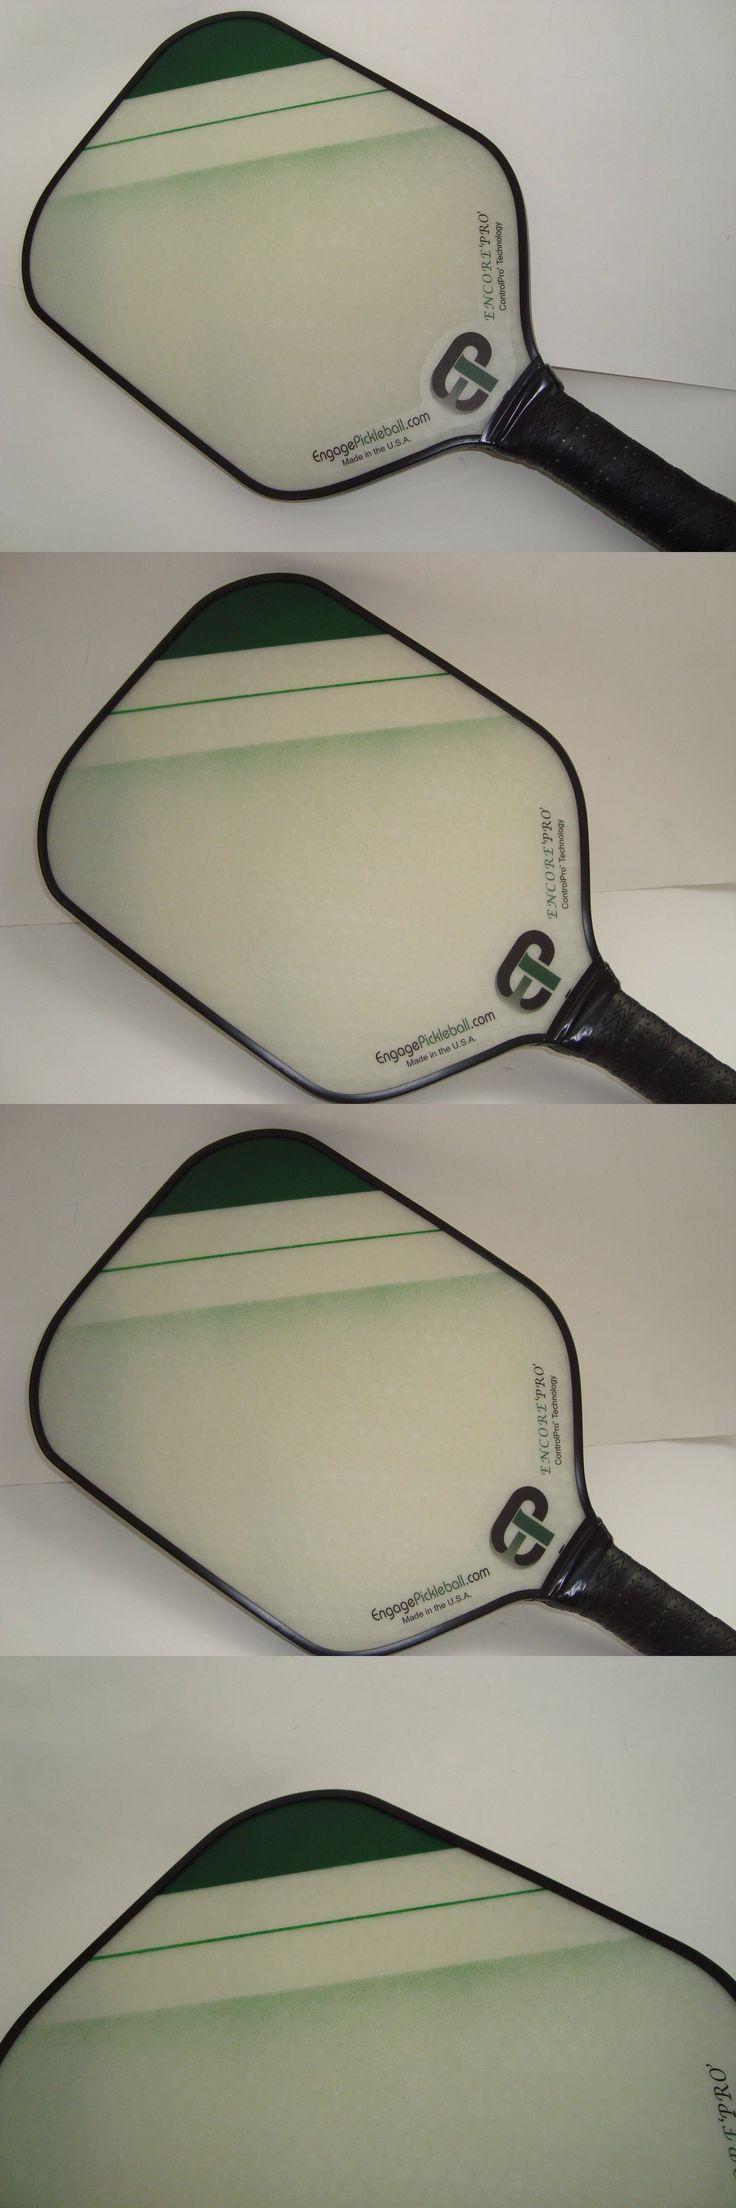 Other Tennis and Racquet Sports 159135: New Engage Encore Pro Pickleball Paddle Enhanced Feel Larger Sweet Spot Green -> BUY IT NOW ONLY: $85 on eBay!